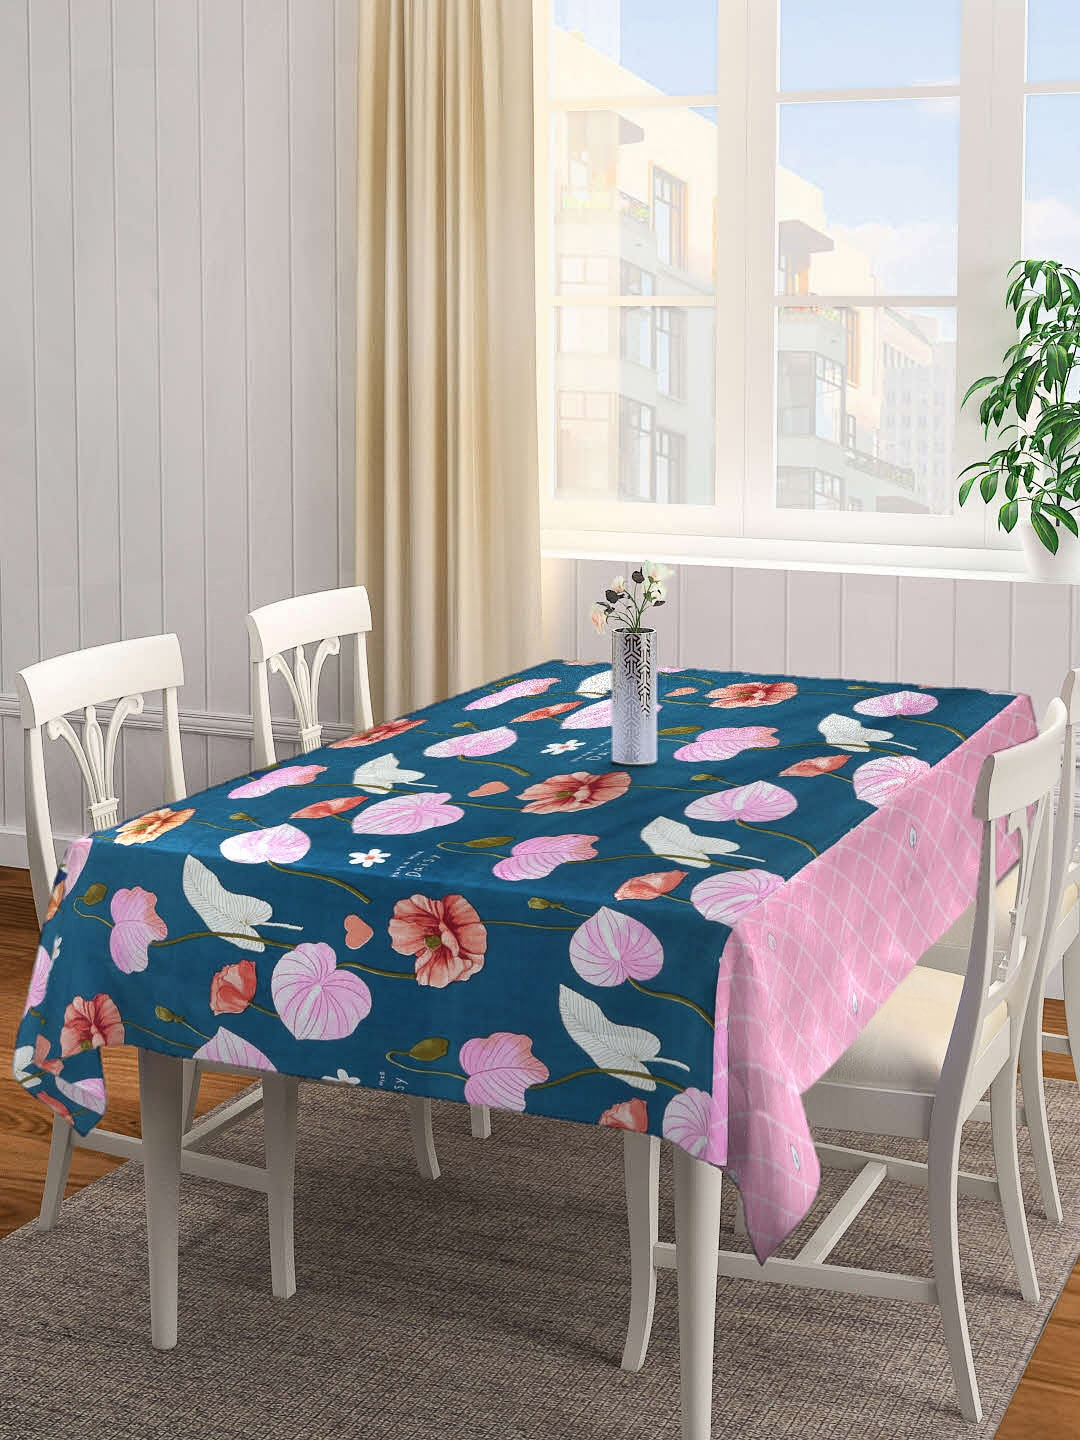 Arrabi Navy Blue   Pink Floral Printed 6 Seater Table Cover